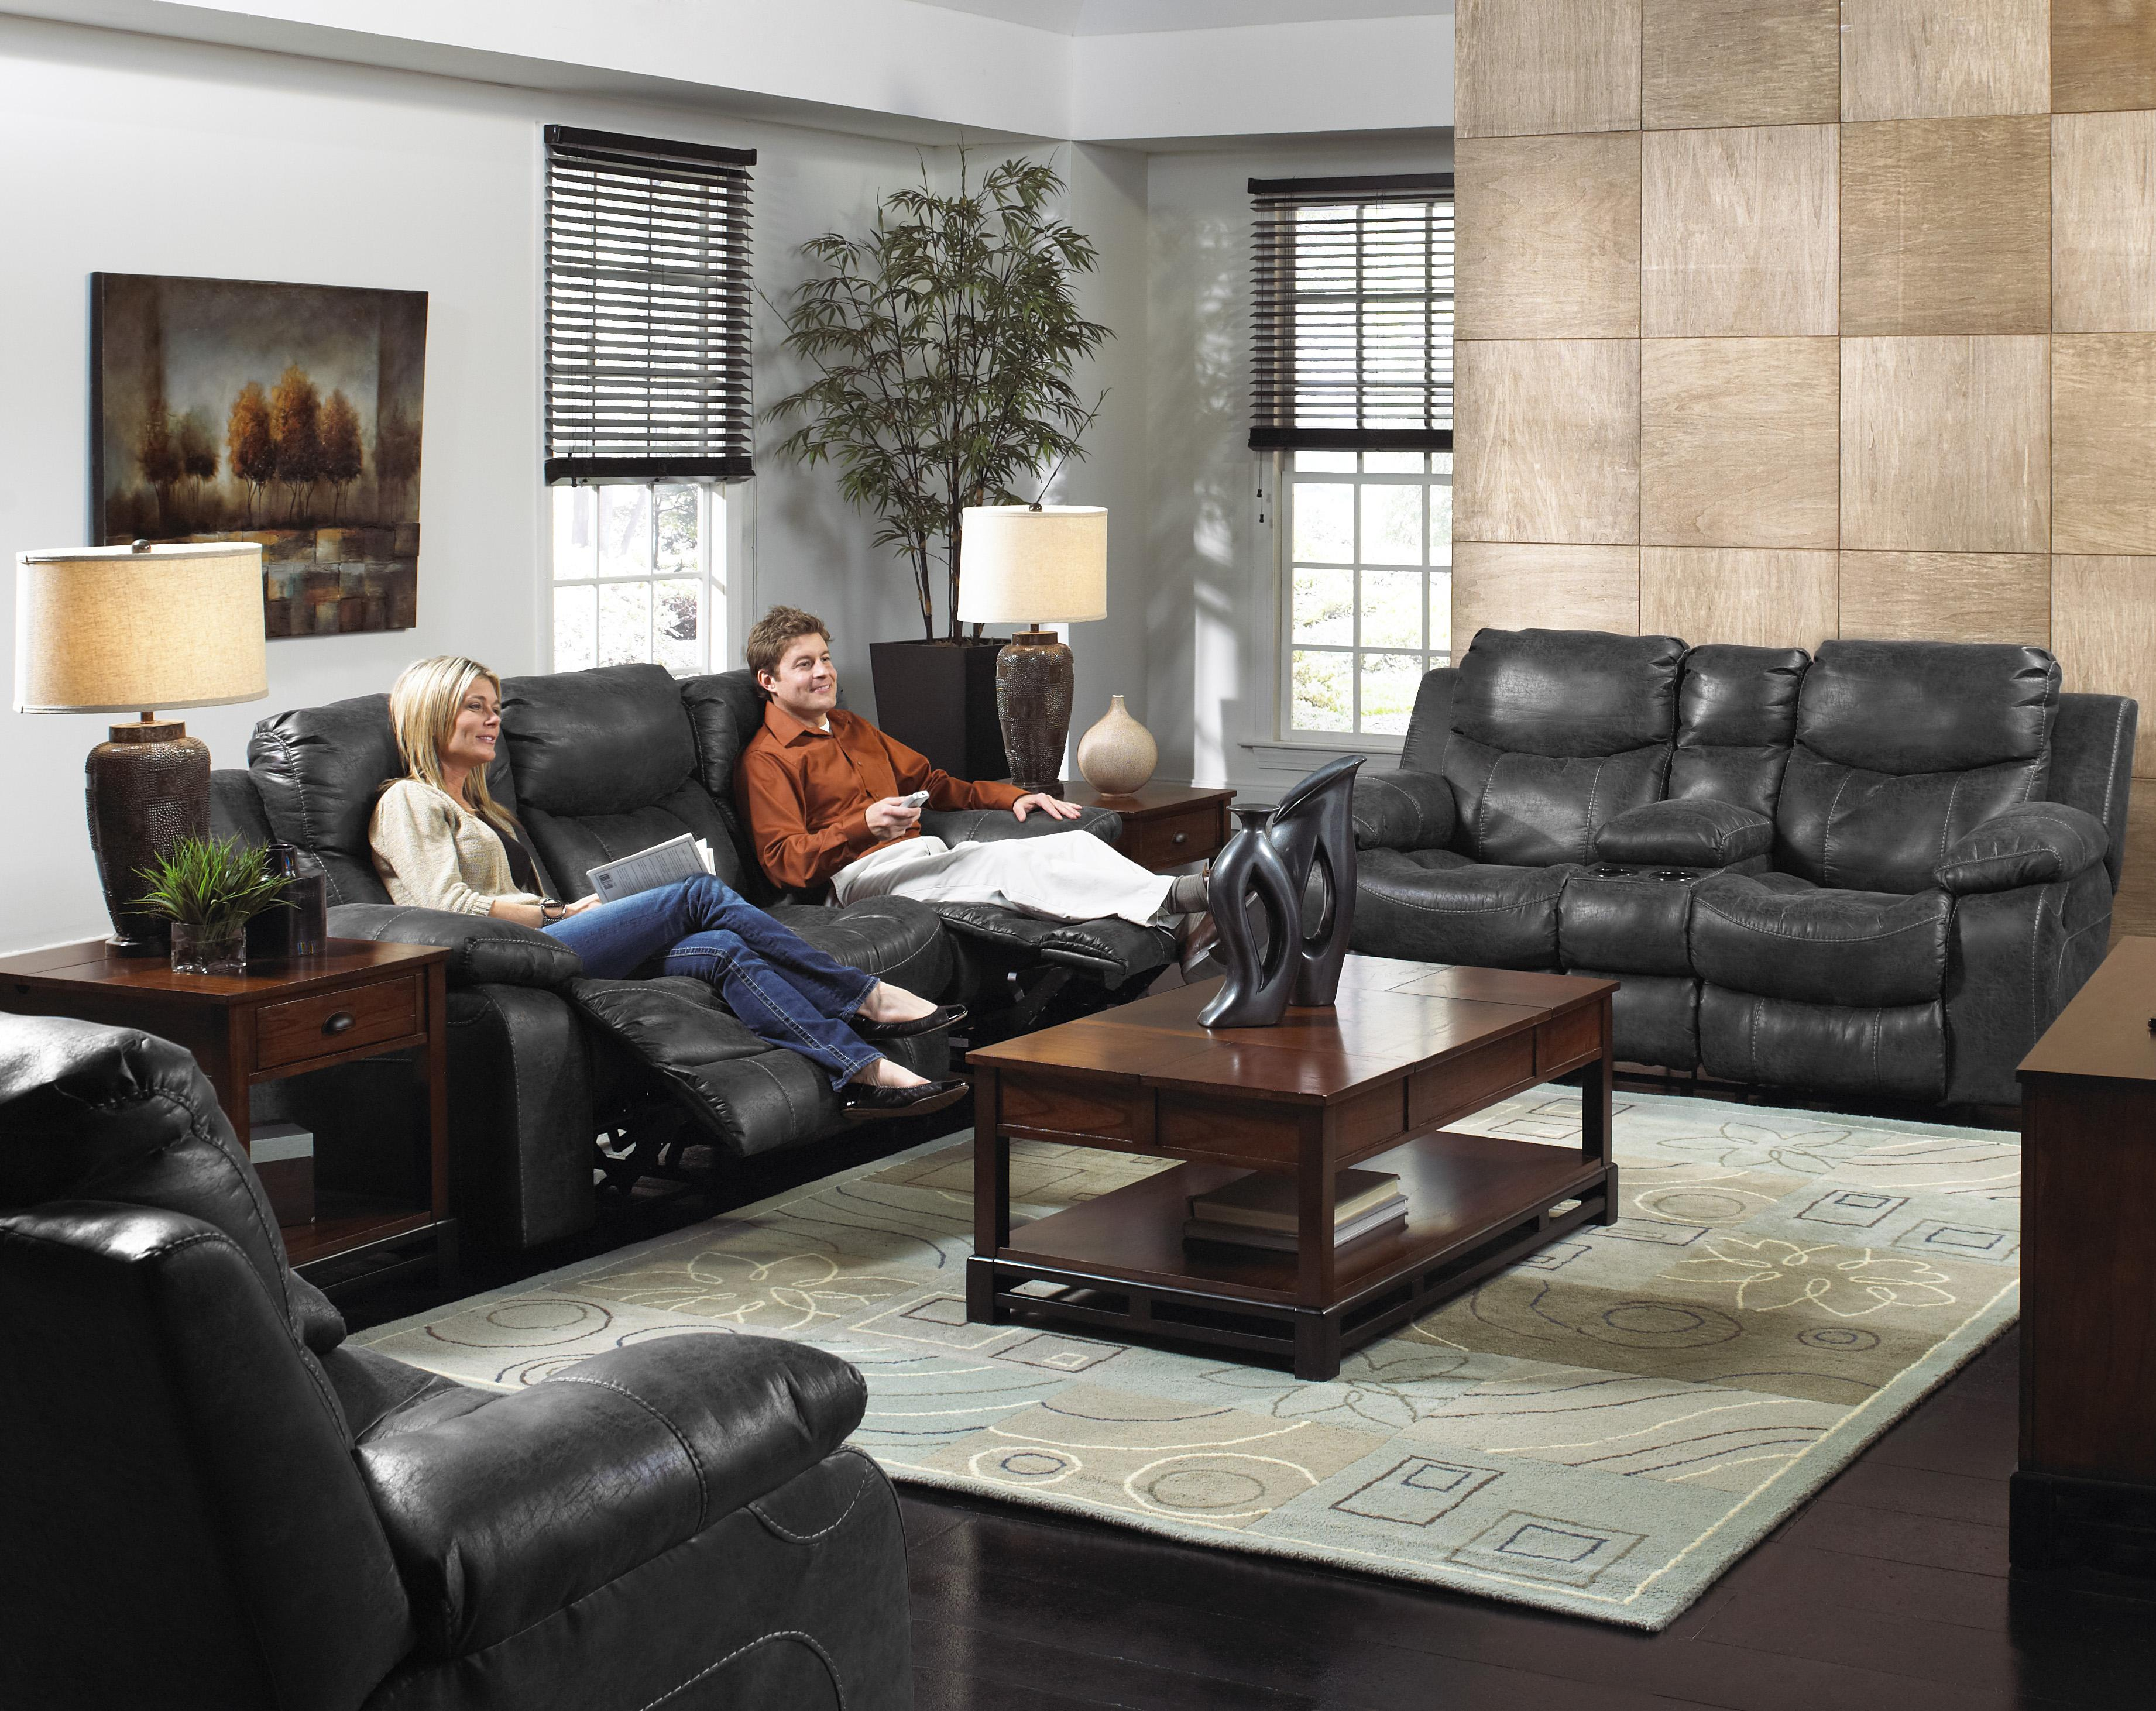 Leather Couch Family Room Part - 27: Power Reclining Faux Leather Sofa For Living Rooms And Family Rooms